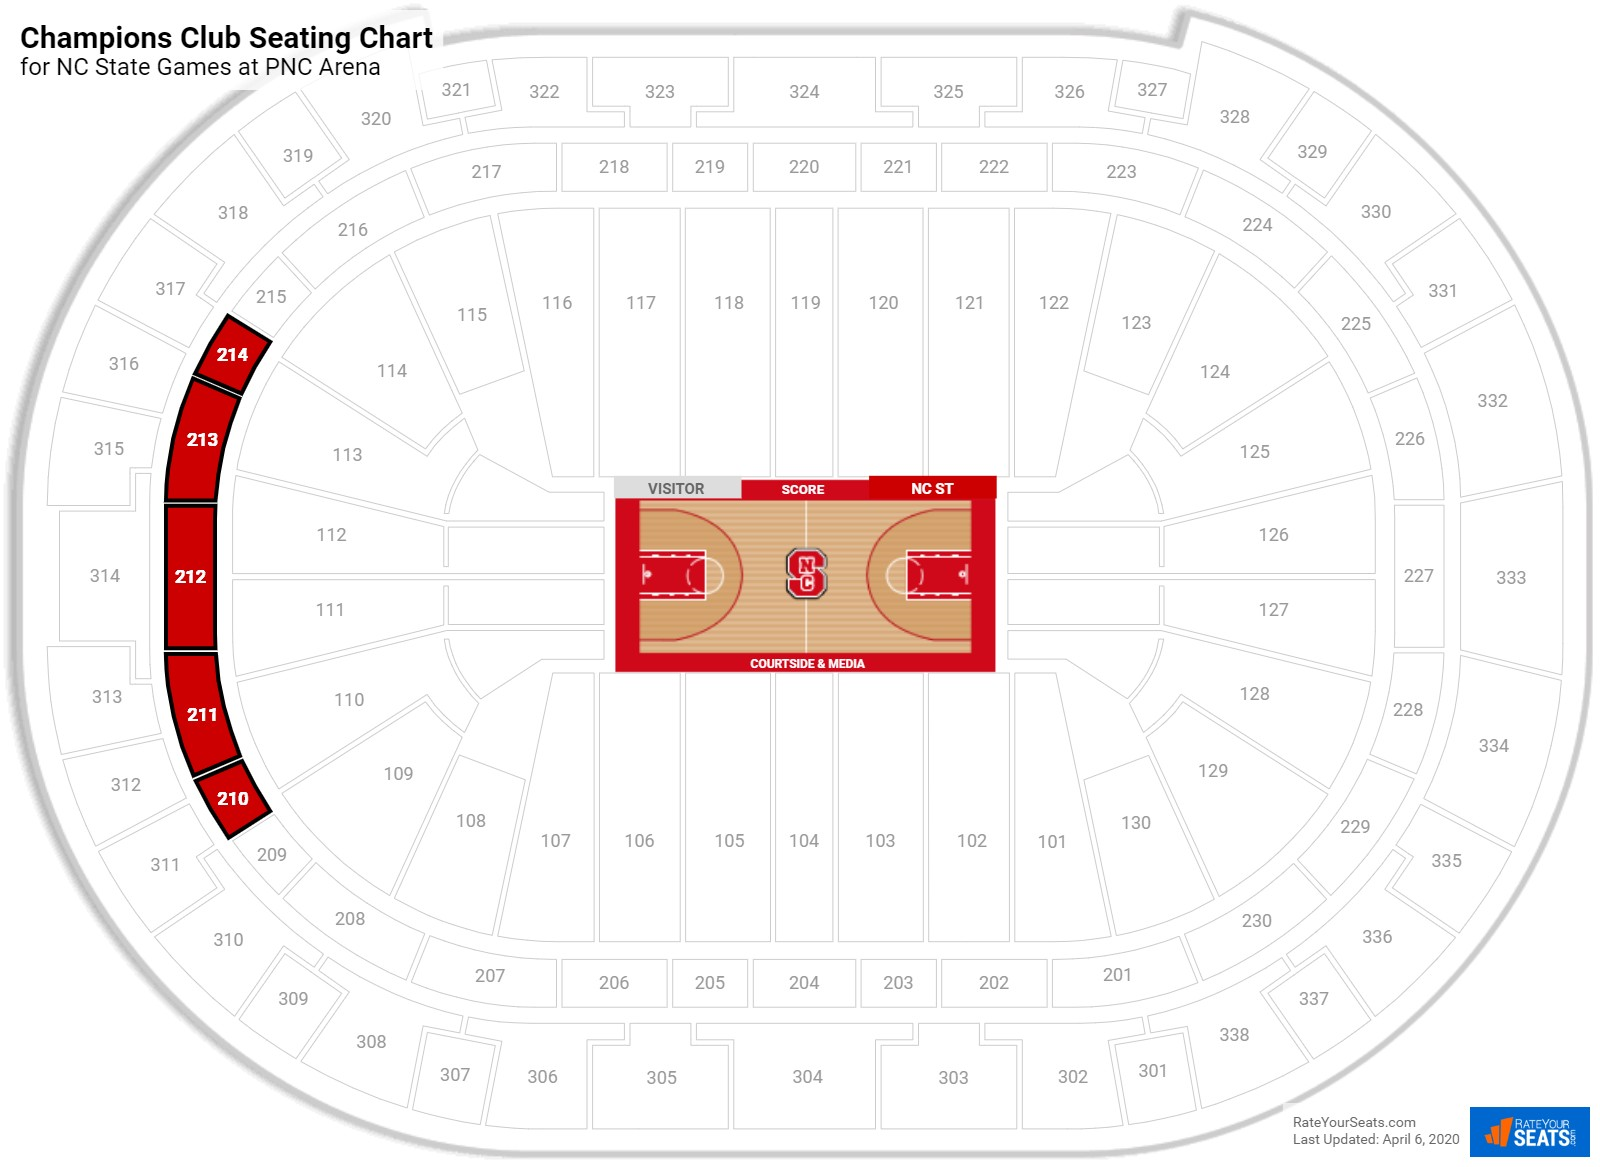 PNC Arena Champions Club seating chart